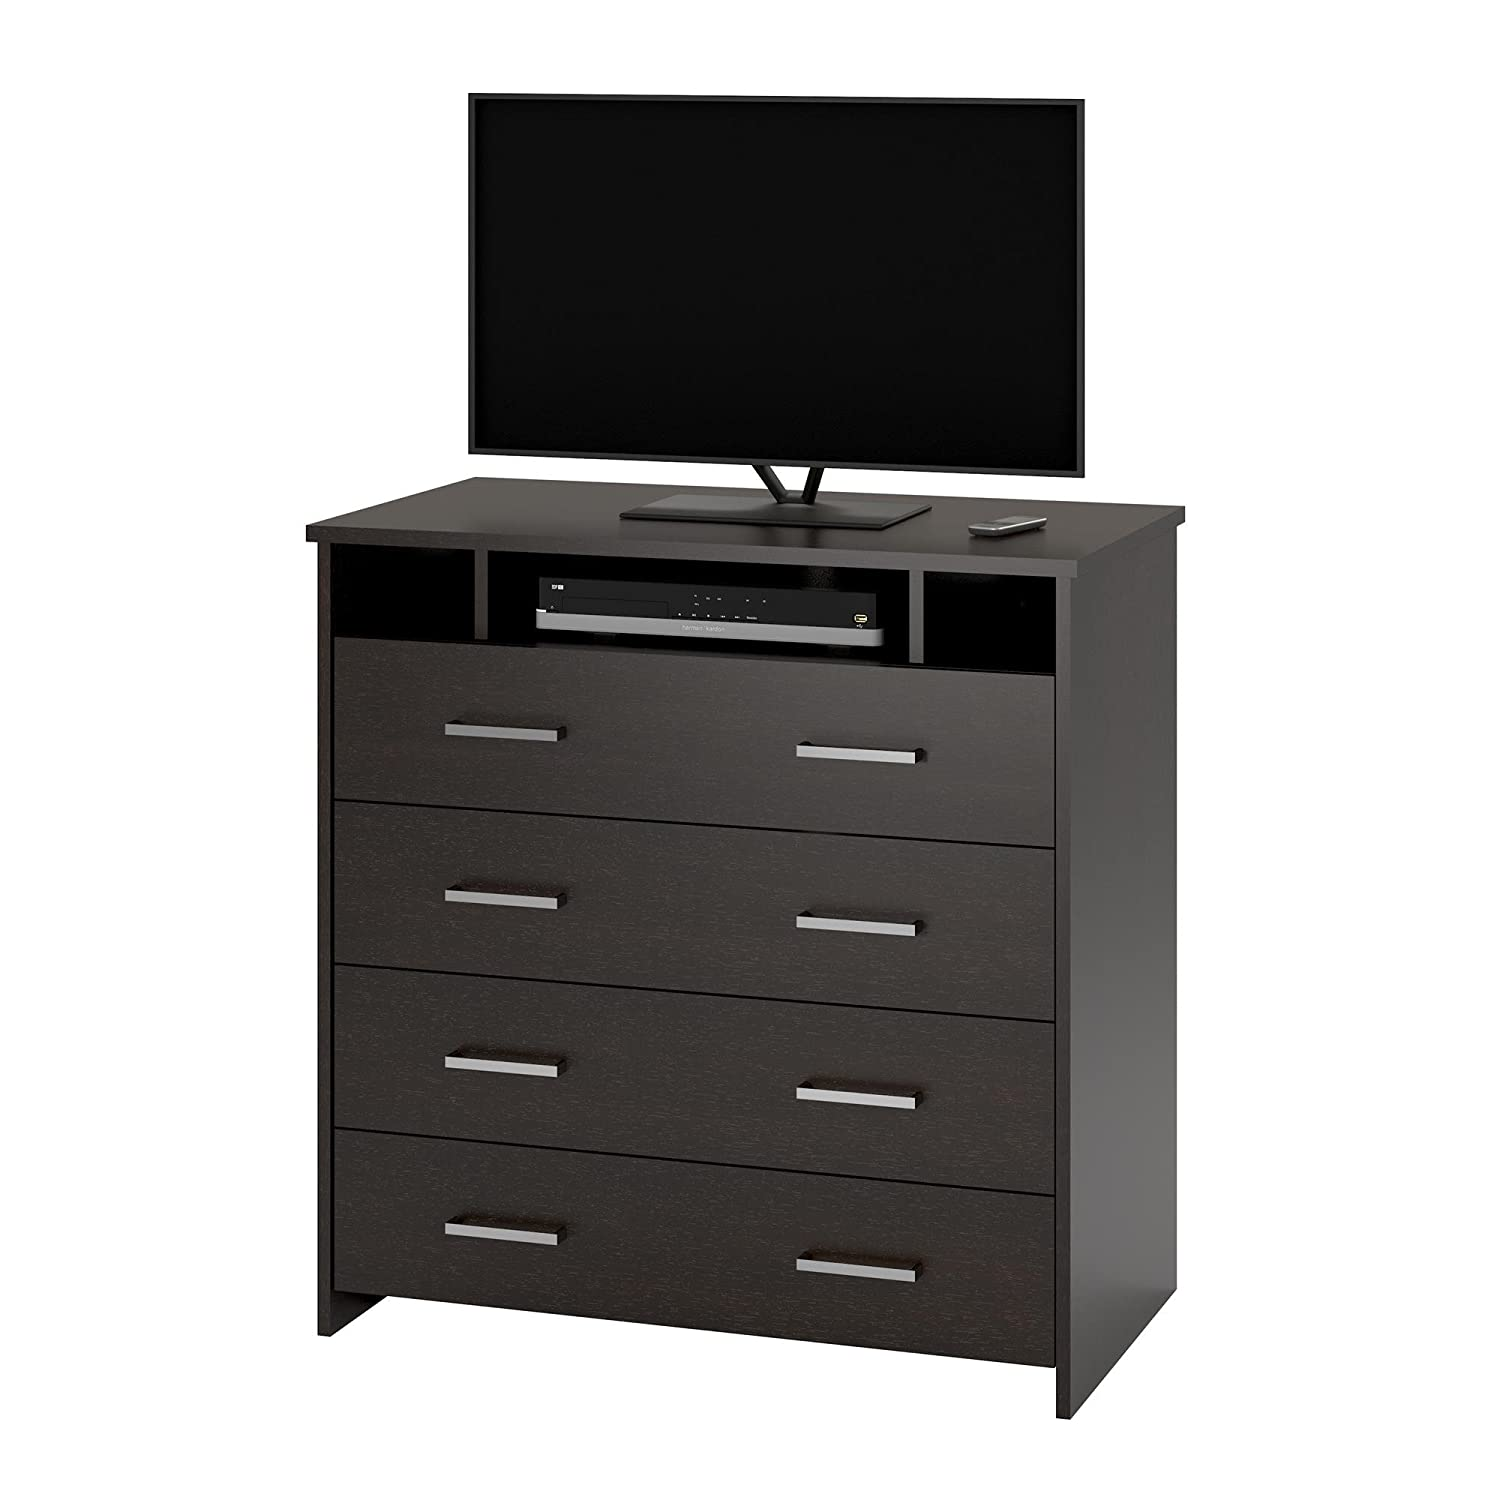 drawers italian furniture desk dining modern storage of office inexpensive sofa danish chest mid cedar shoe drawer uk room century lane bench accessories toronto hd within fascinating